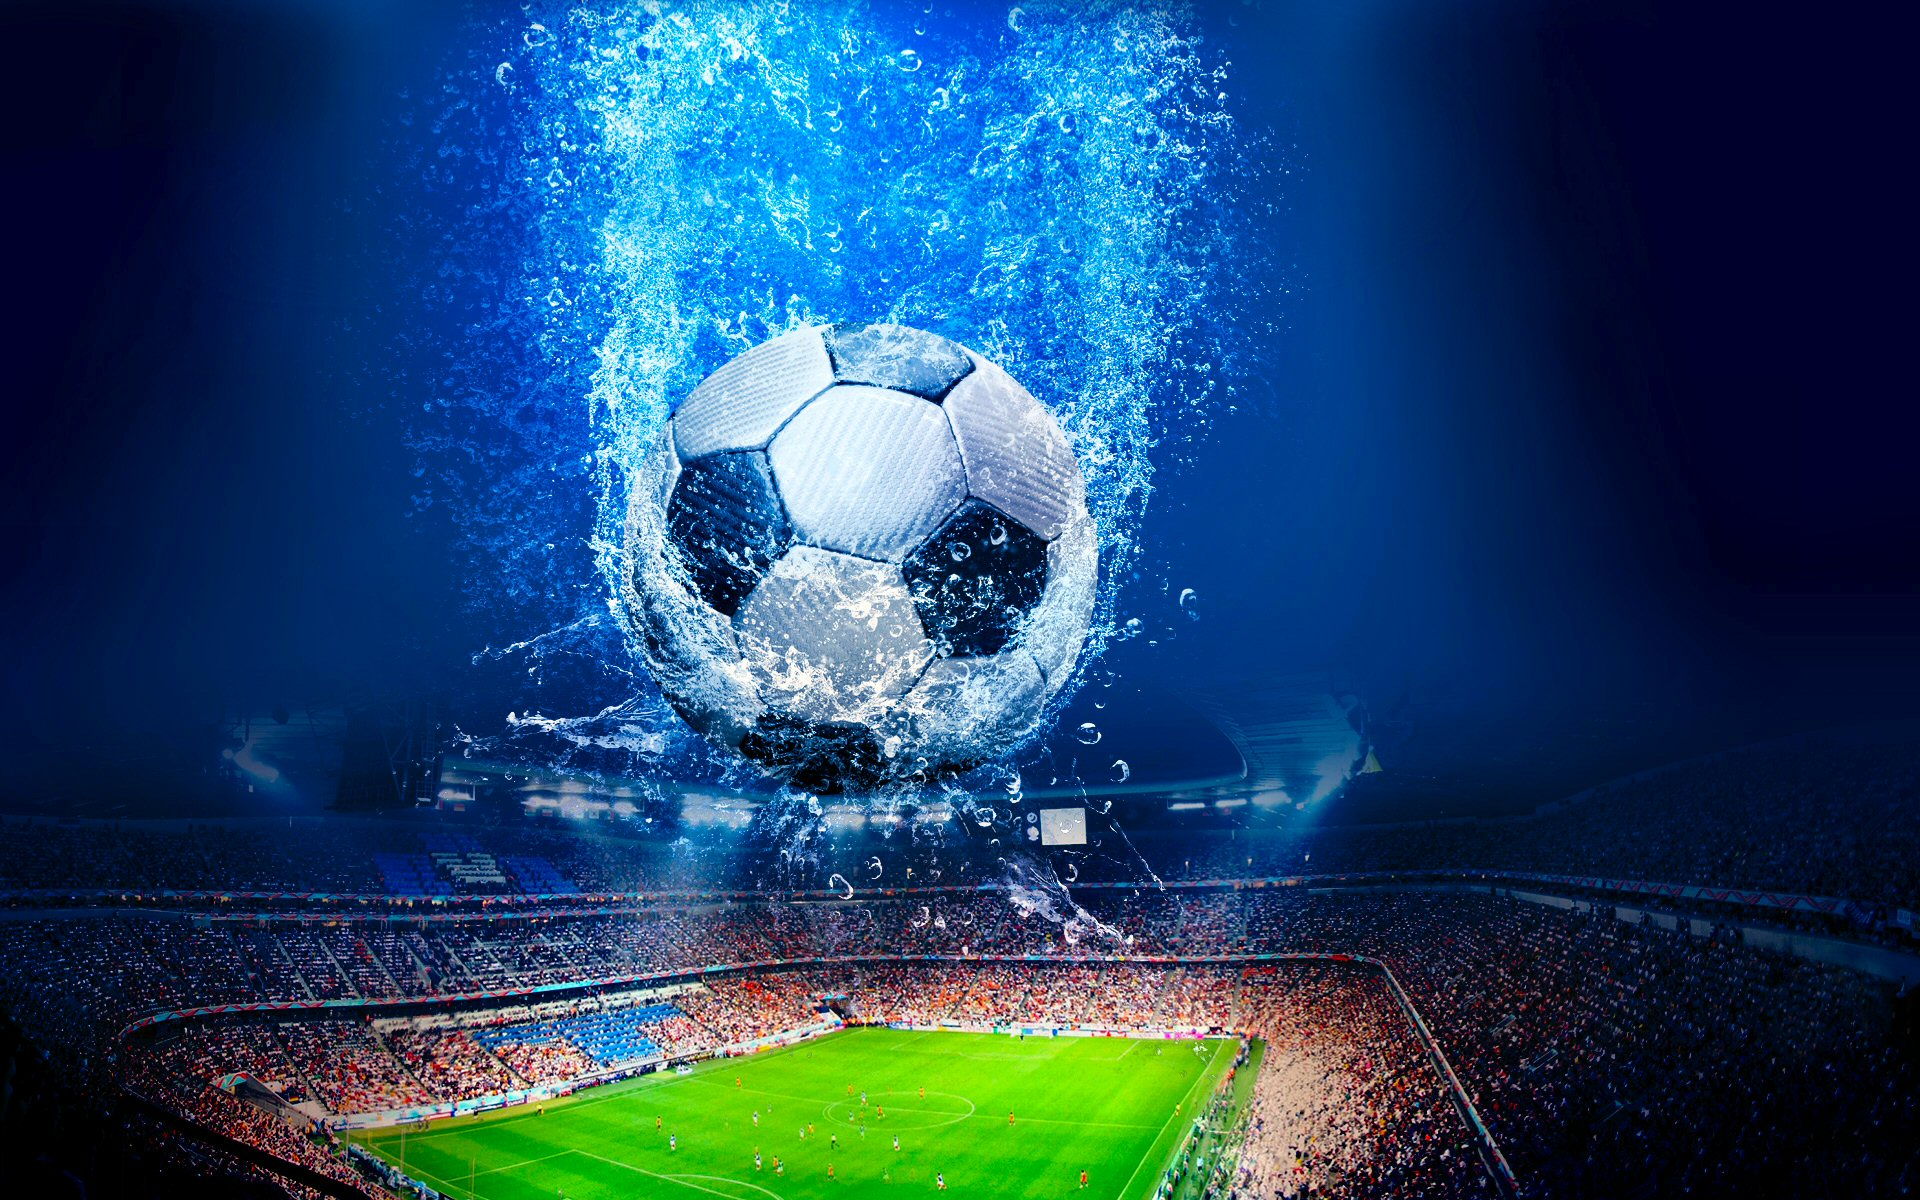 Fifa World Cup Brazil 2014 Hd Wallpaper Background Image